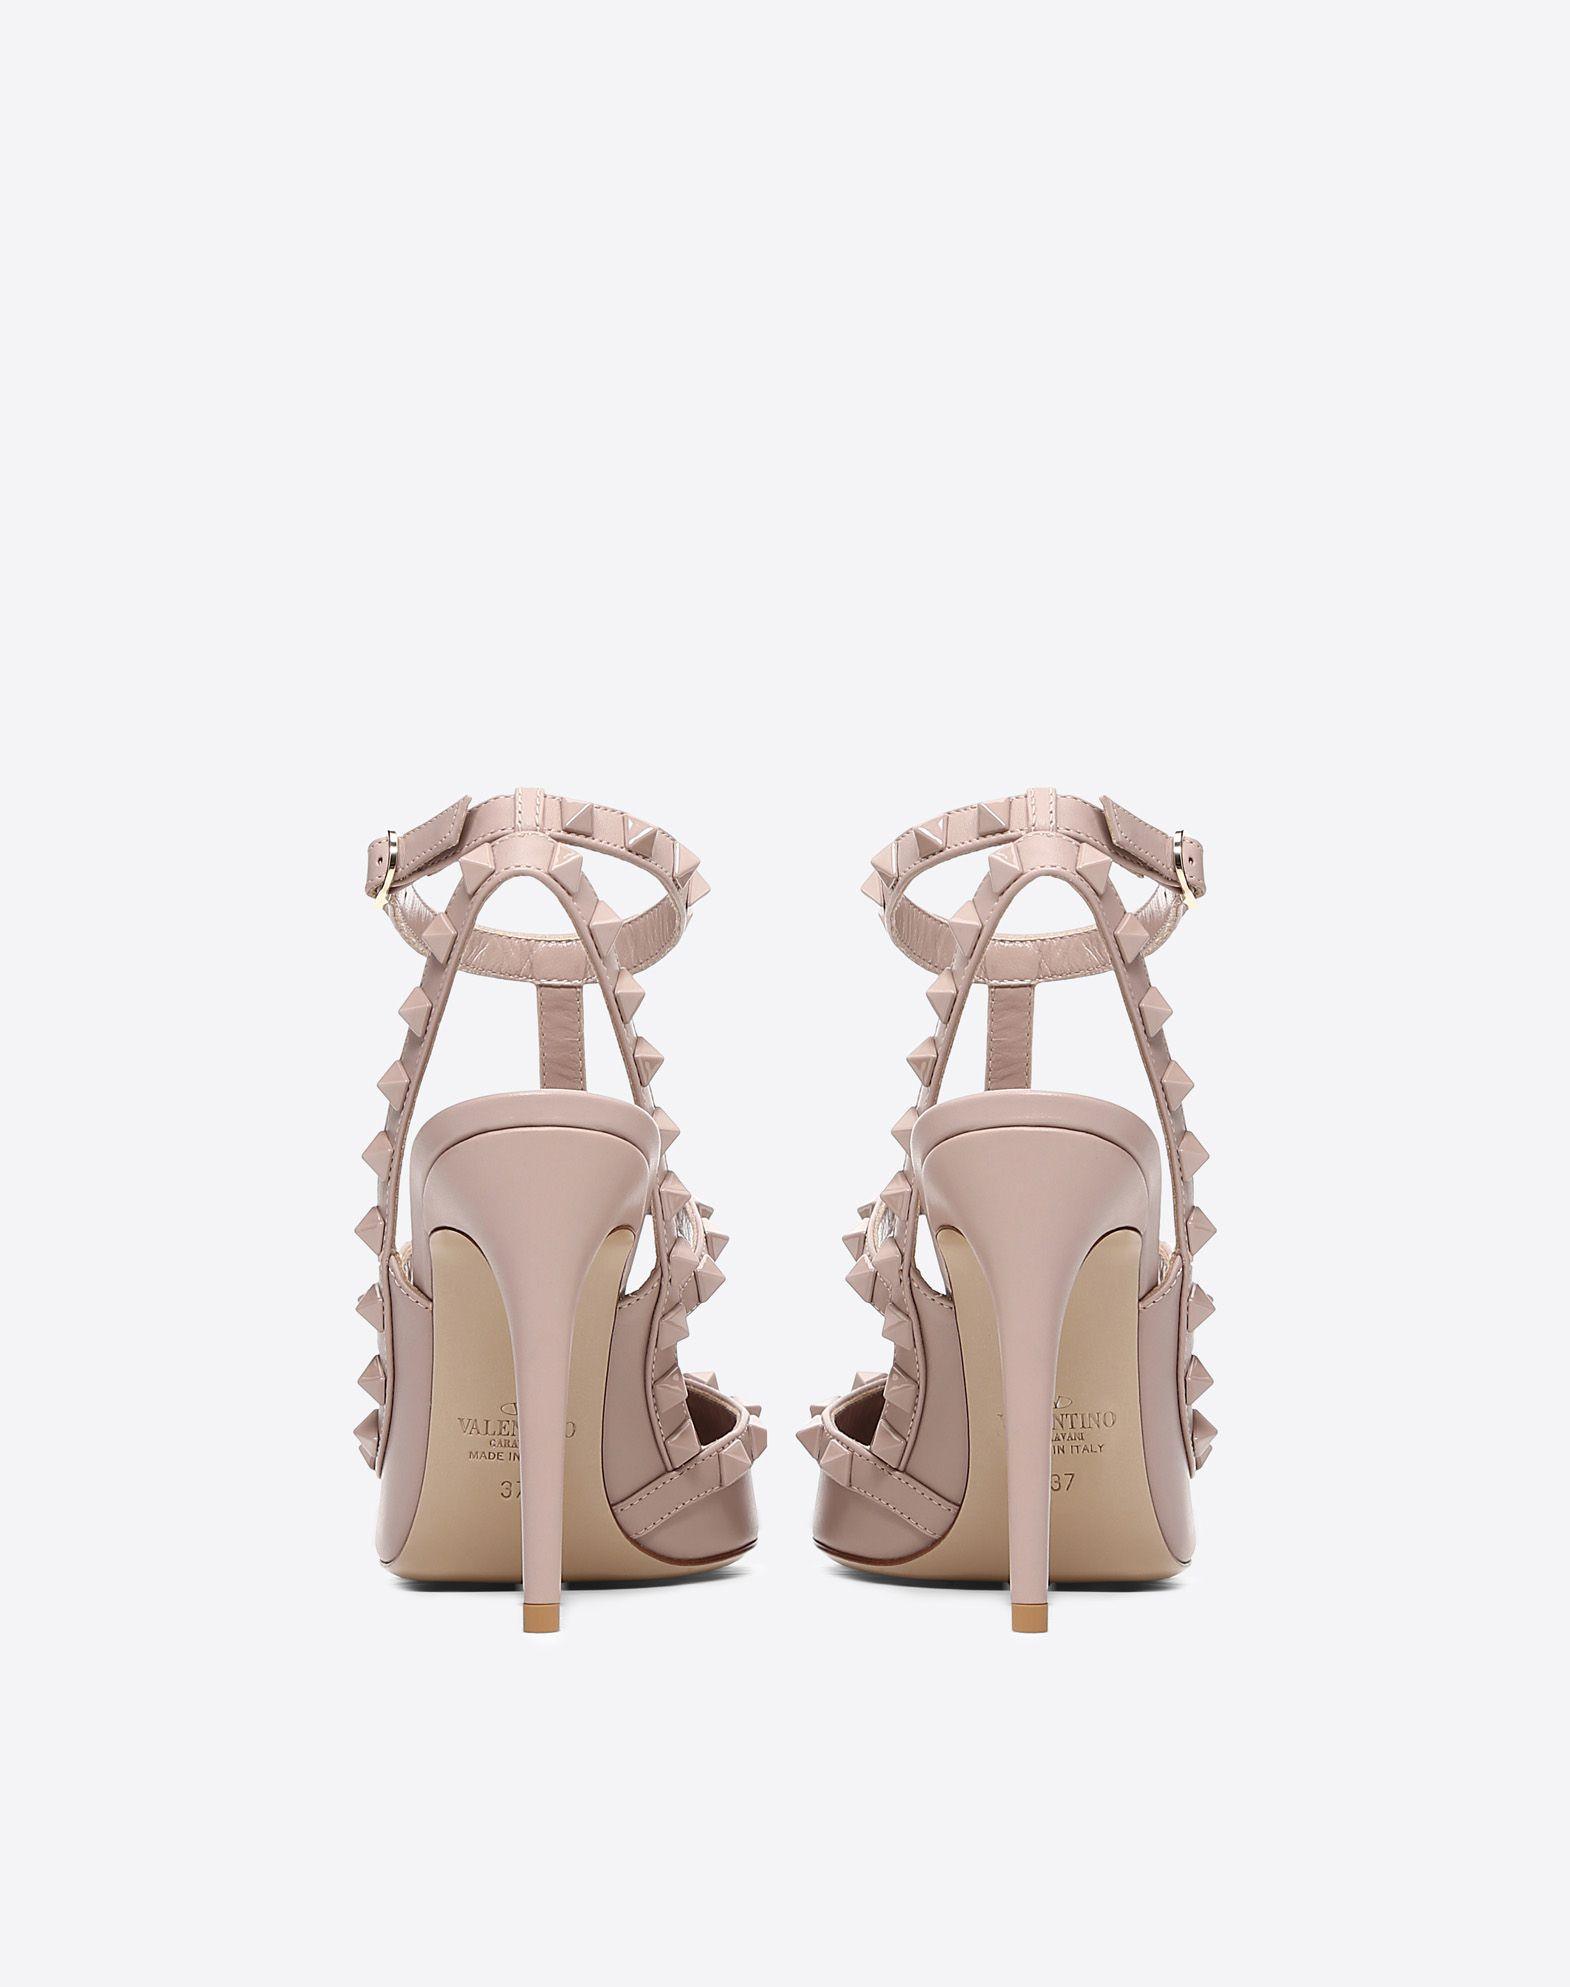 b95ecc876 Valentino Rockstud Ankle Strap Pump With Tonal Studs 100 Mm In  Champagne-Nude